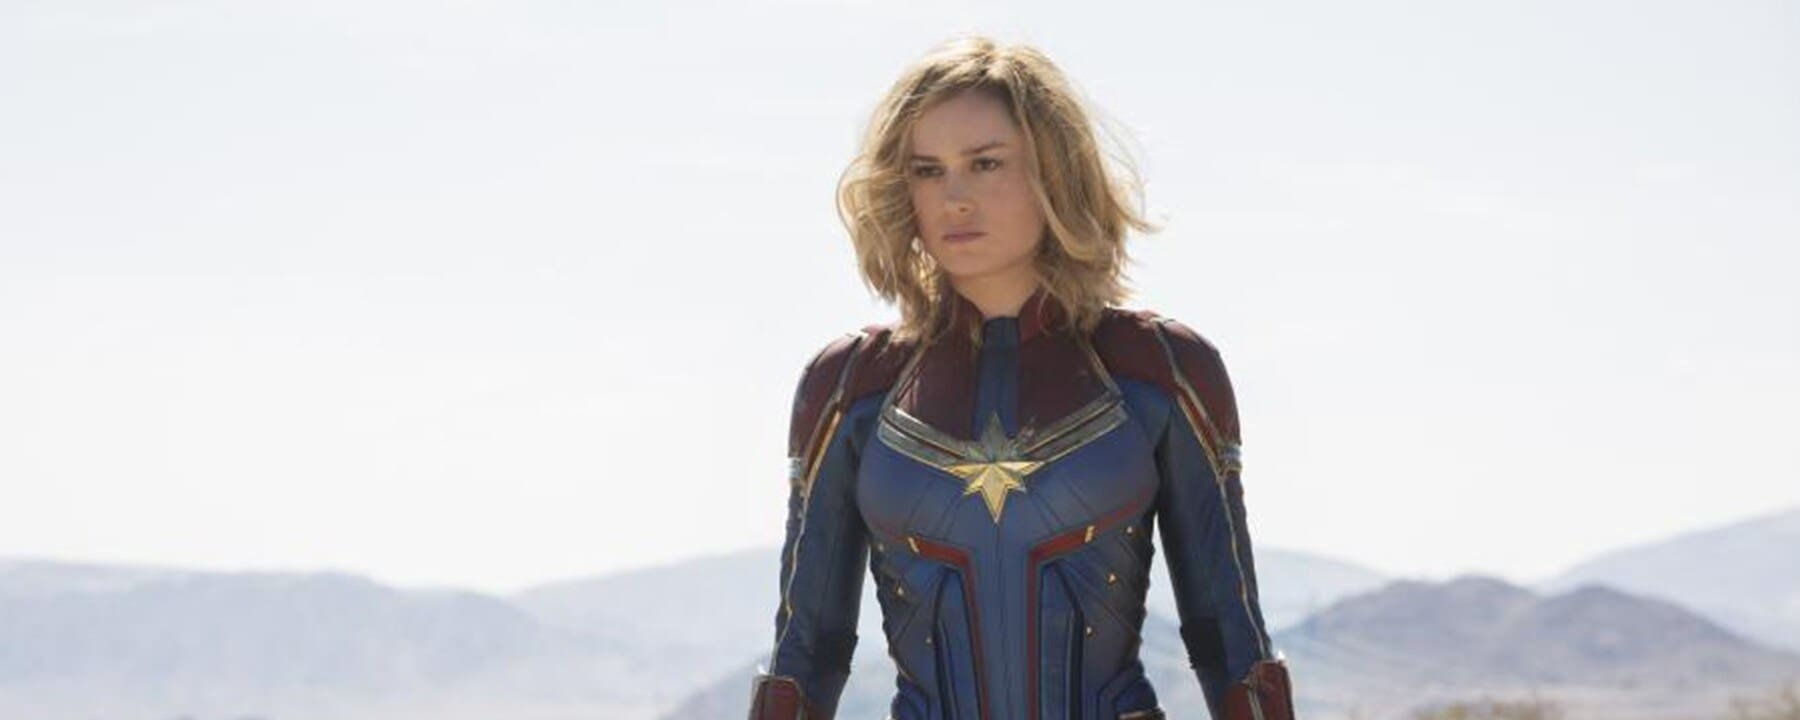 Captain Marvel wearing Blue and Red suit with gold trim in the desert.